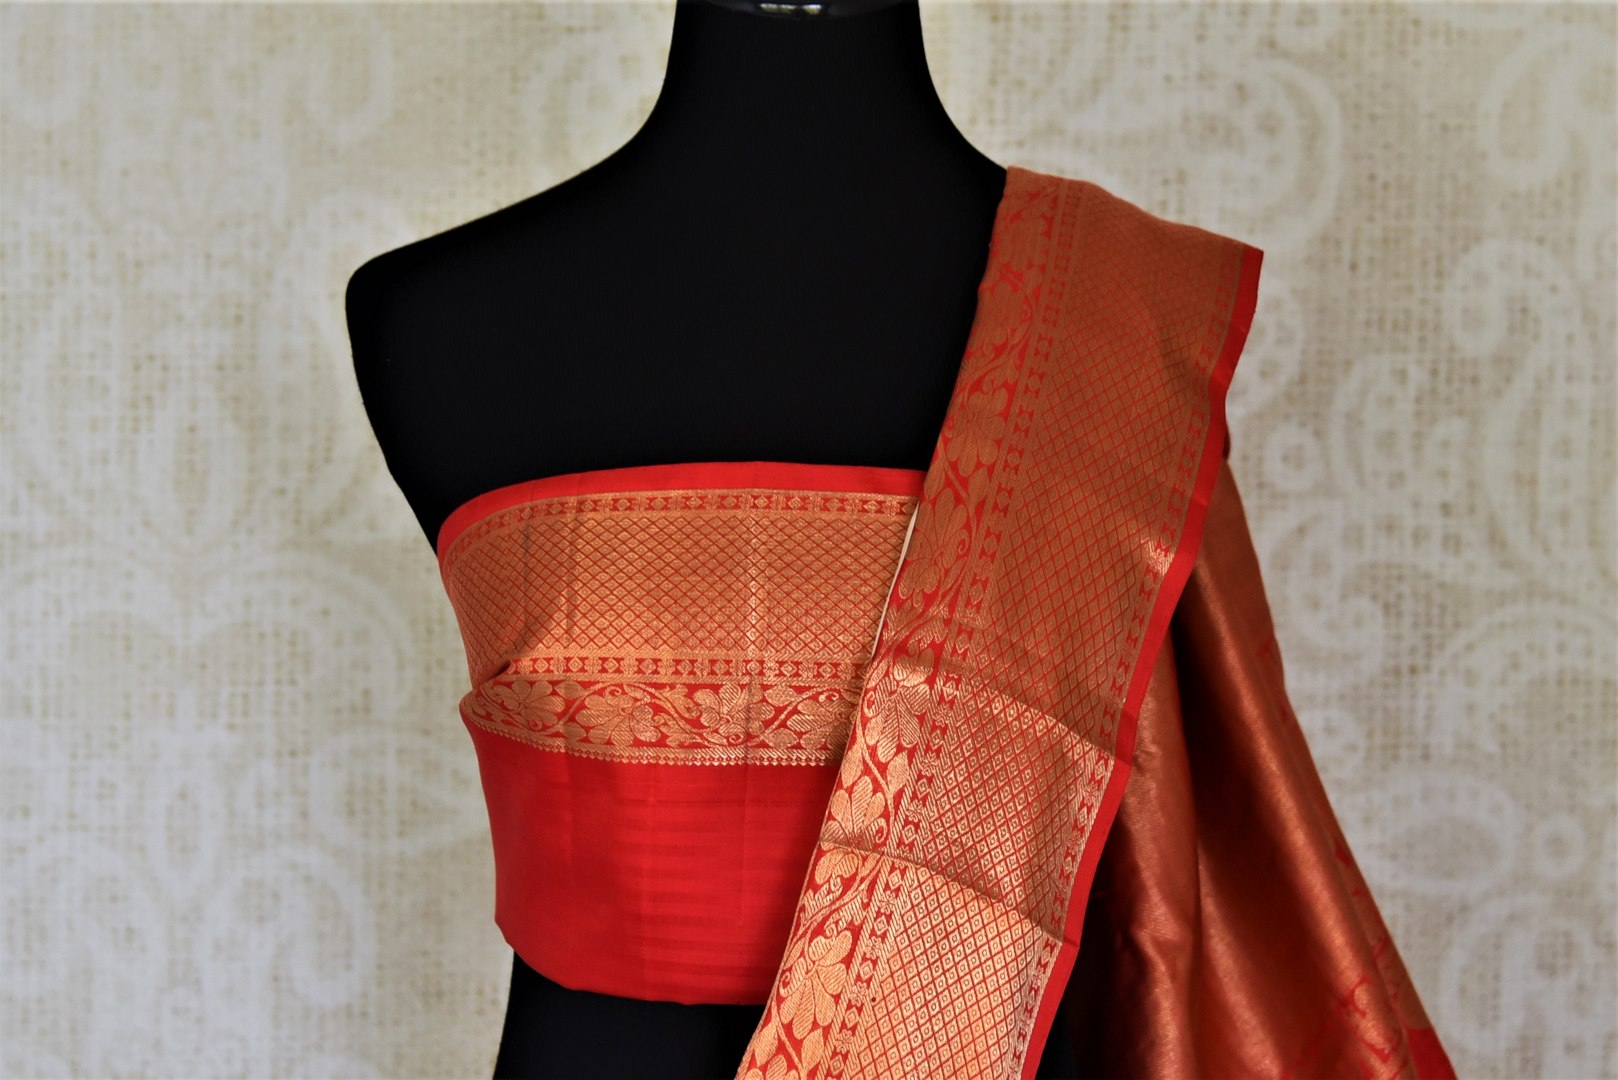 Shop cream self stripes Kanjivaram sari online in USA with red zari border. Get spoiled for choices with a myriad of Kanjivaram silk sarees, wedding sarees from Pure Elegance Indian fashion store in USA.-blouse pallu